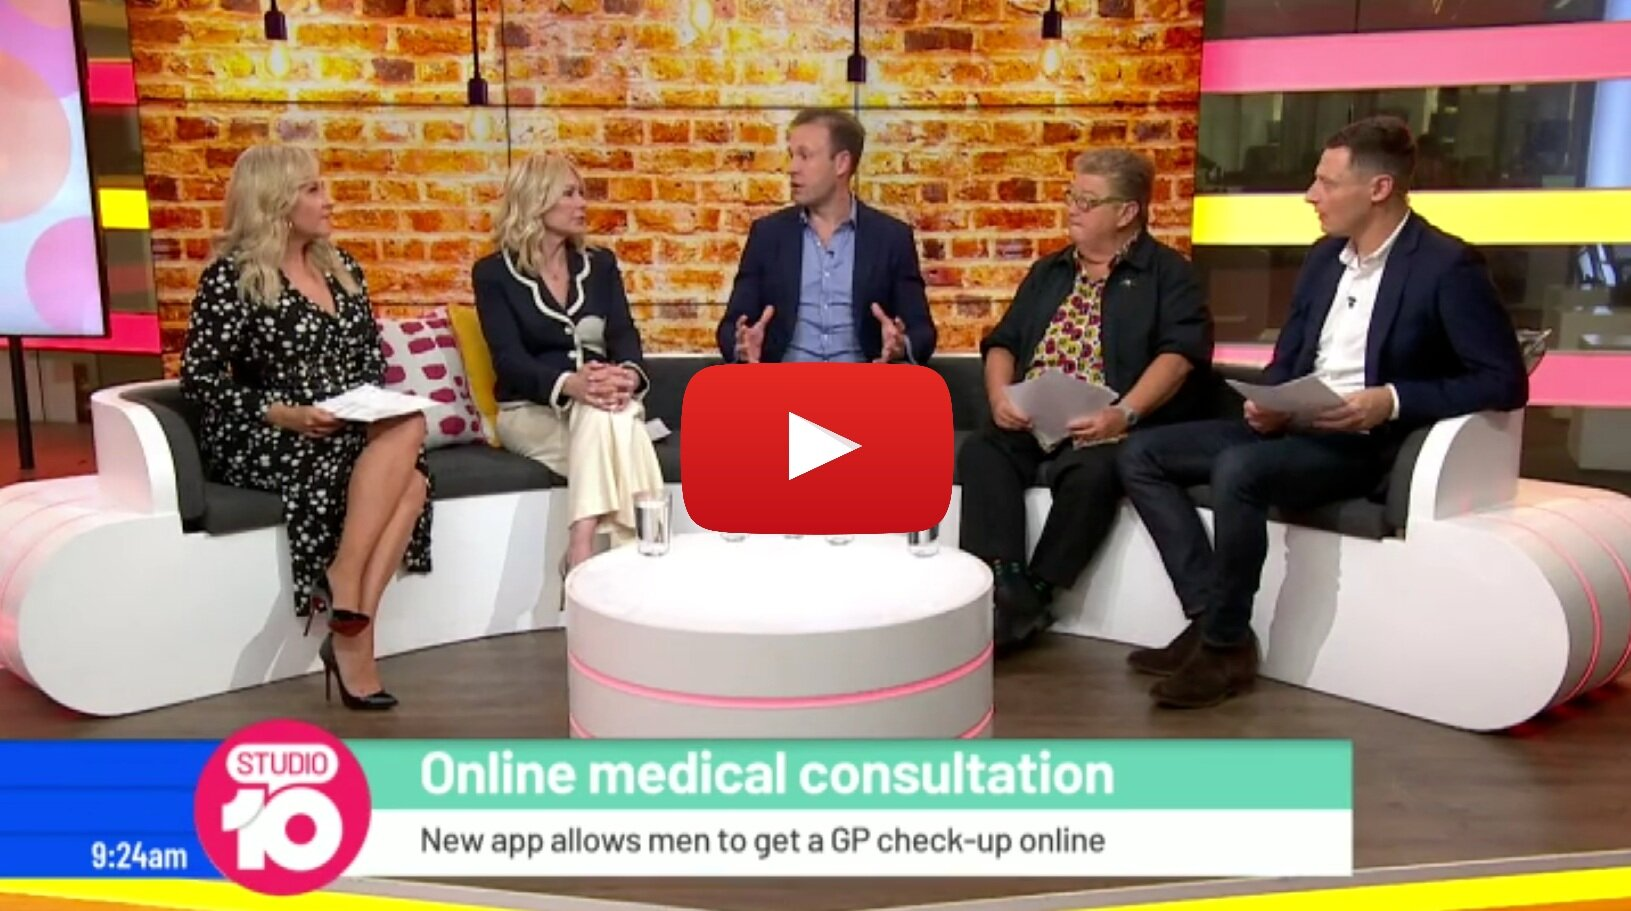 Dr Zac Turner discusses the advent of online GPs, whether you can have a heart attack from playing video games and if hand sanitisers actually work